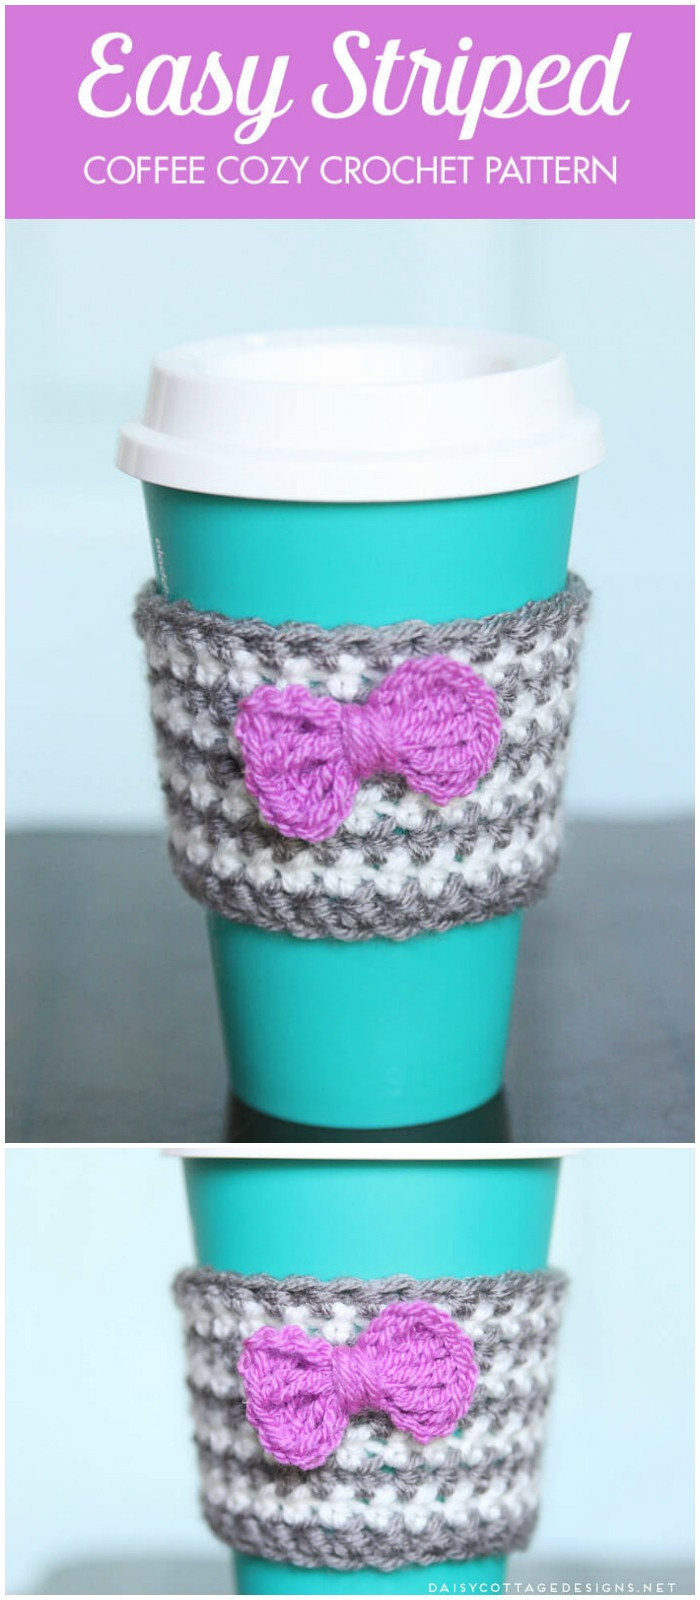 Crochet Coffee Cup Cozy Fresh 8 Crochet Cozy Patterns Free Crochet Patterns • Diy Home Of Crochet Coffee Cup Cozy Best Of Craftdrawer Crafts Free Easy to Crochet Mug Cozy Patterns